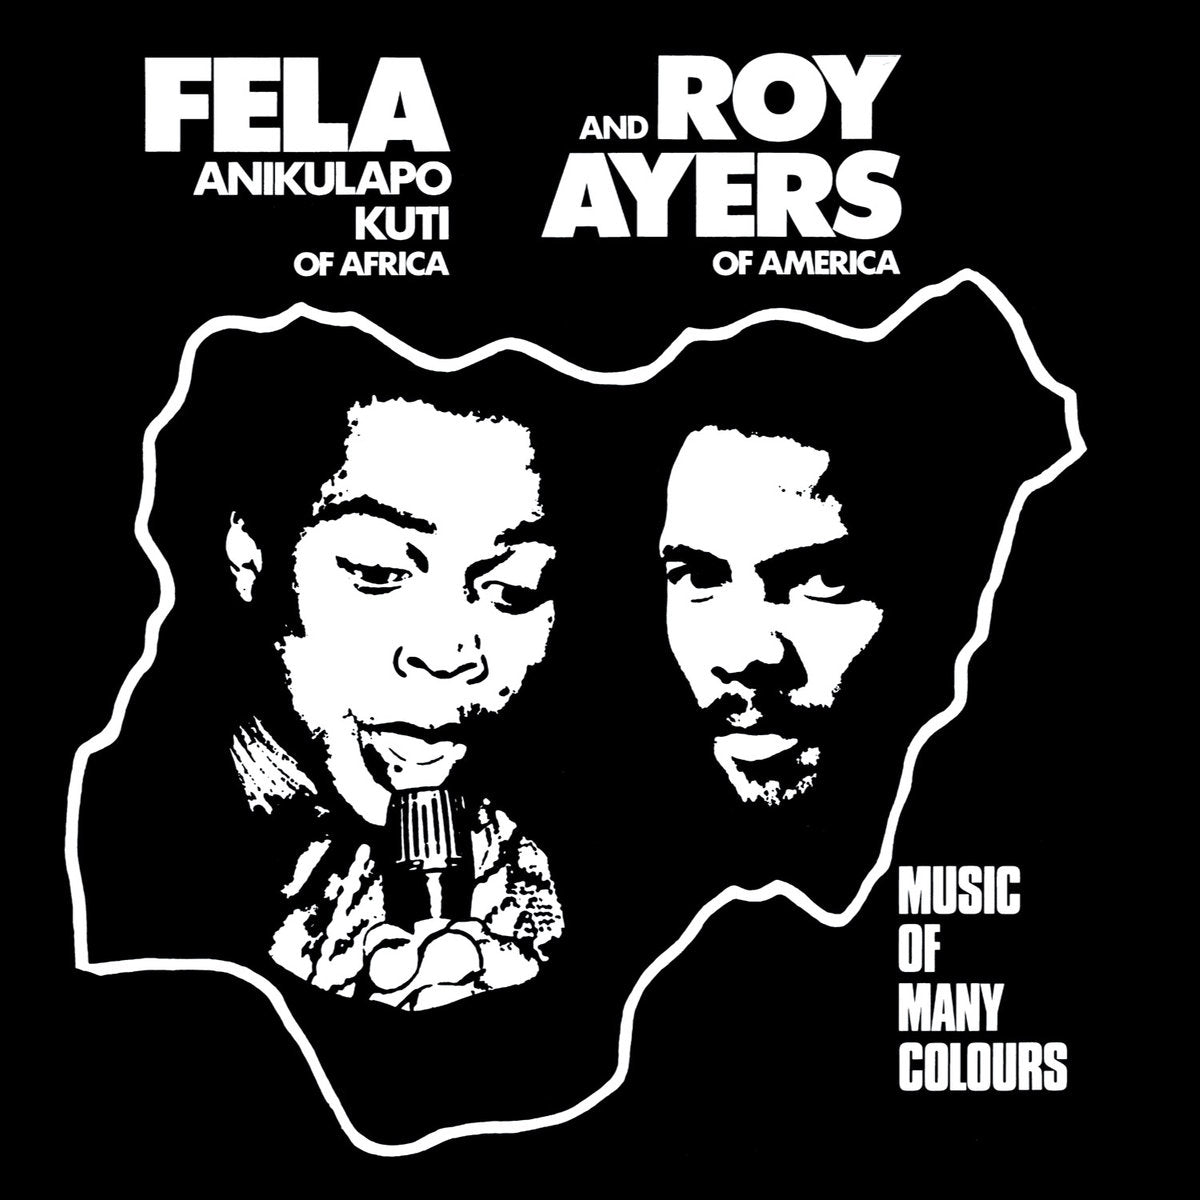 Fela Kuti & Roy Ayers: Music Of Many Colours (Colored Vinyl) Vinyl LP (Record Store Day)